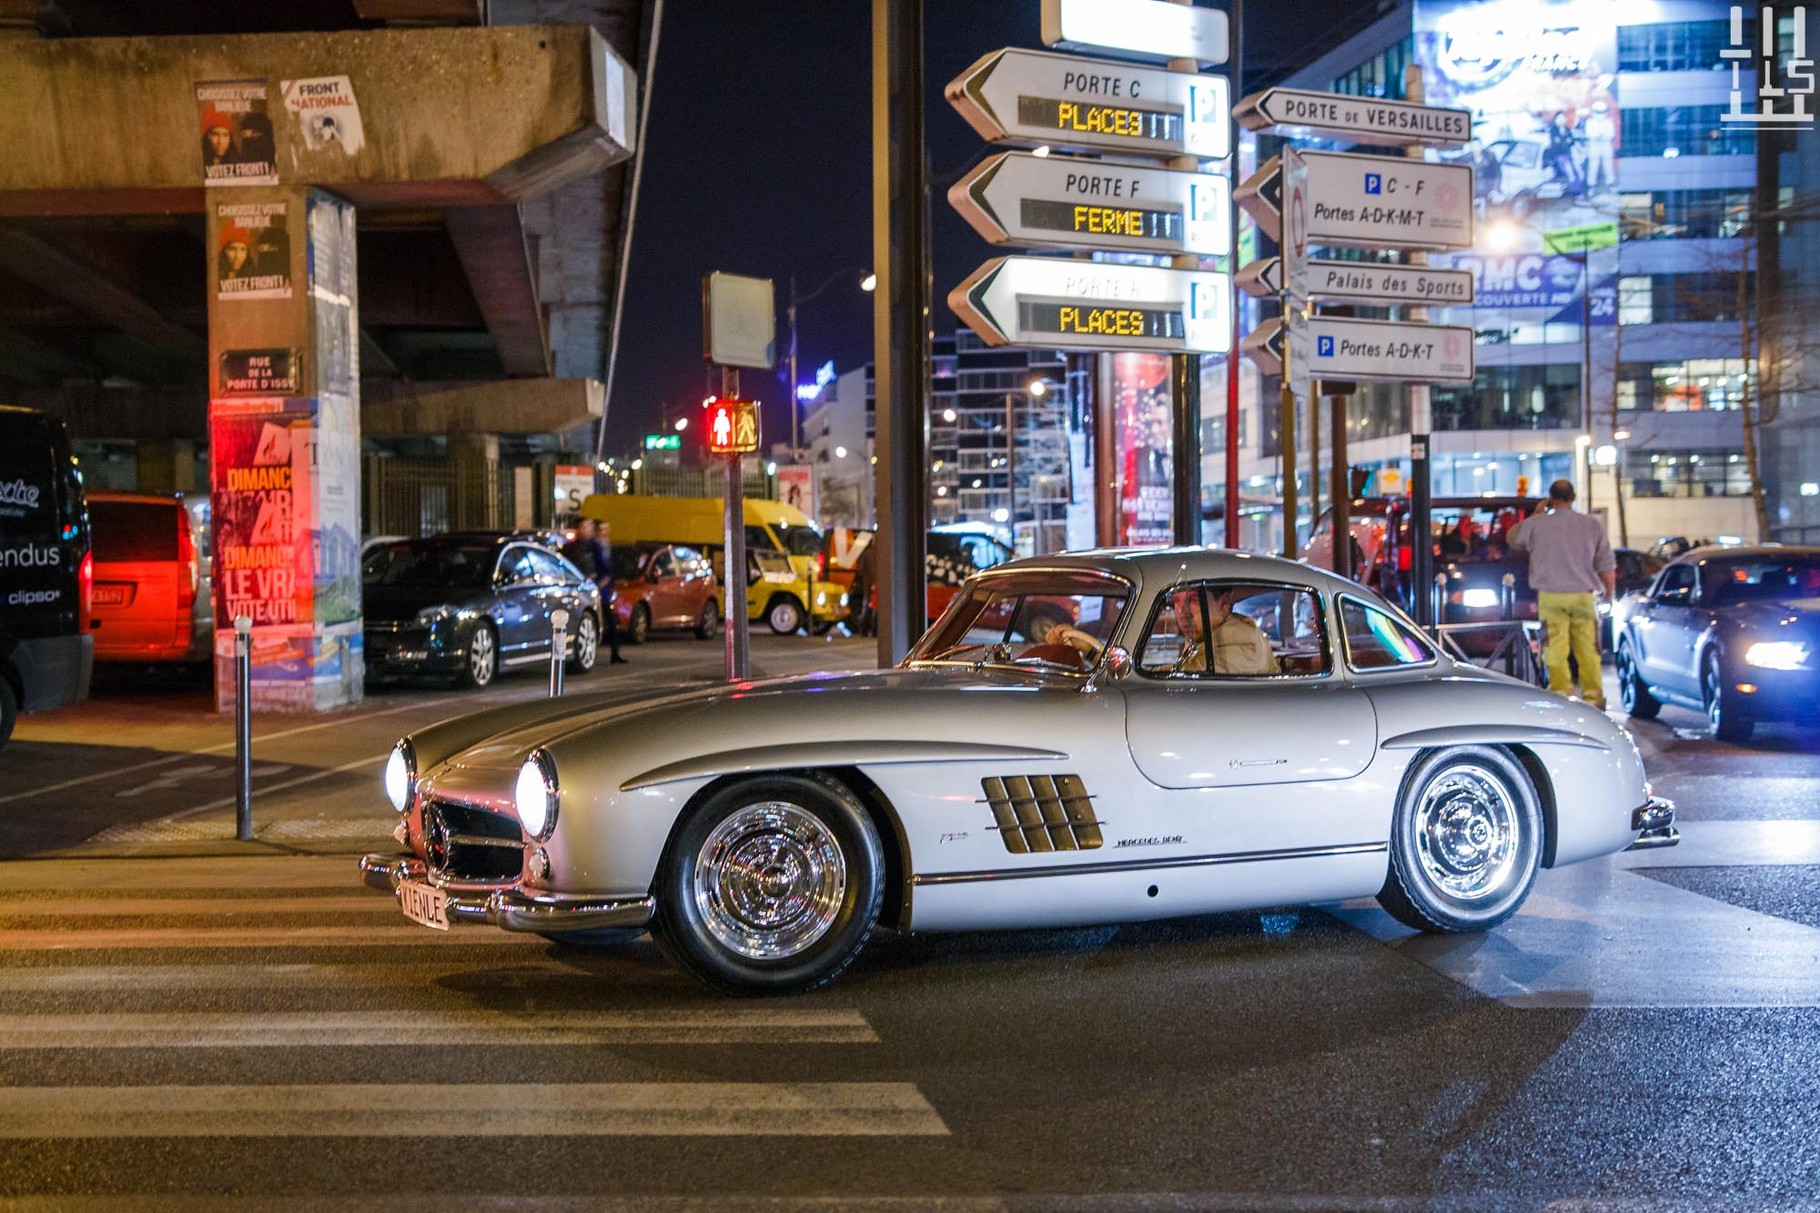 Mercedes-Benz 300 SL Gullwing, auto que j'affectionne.